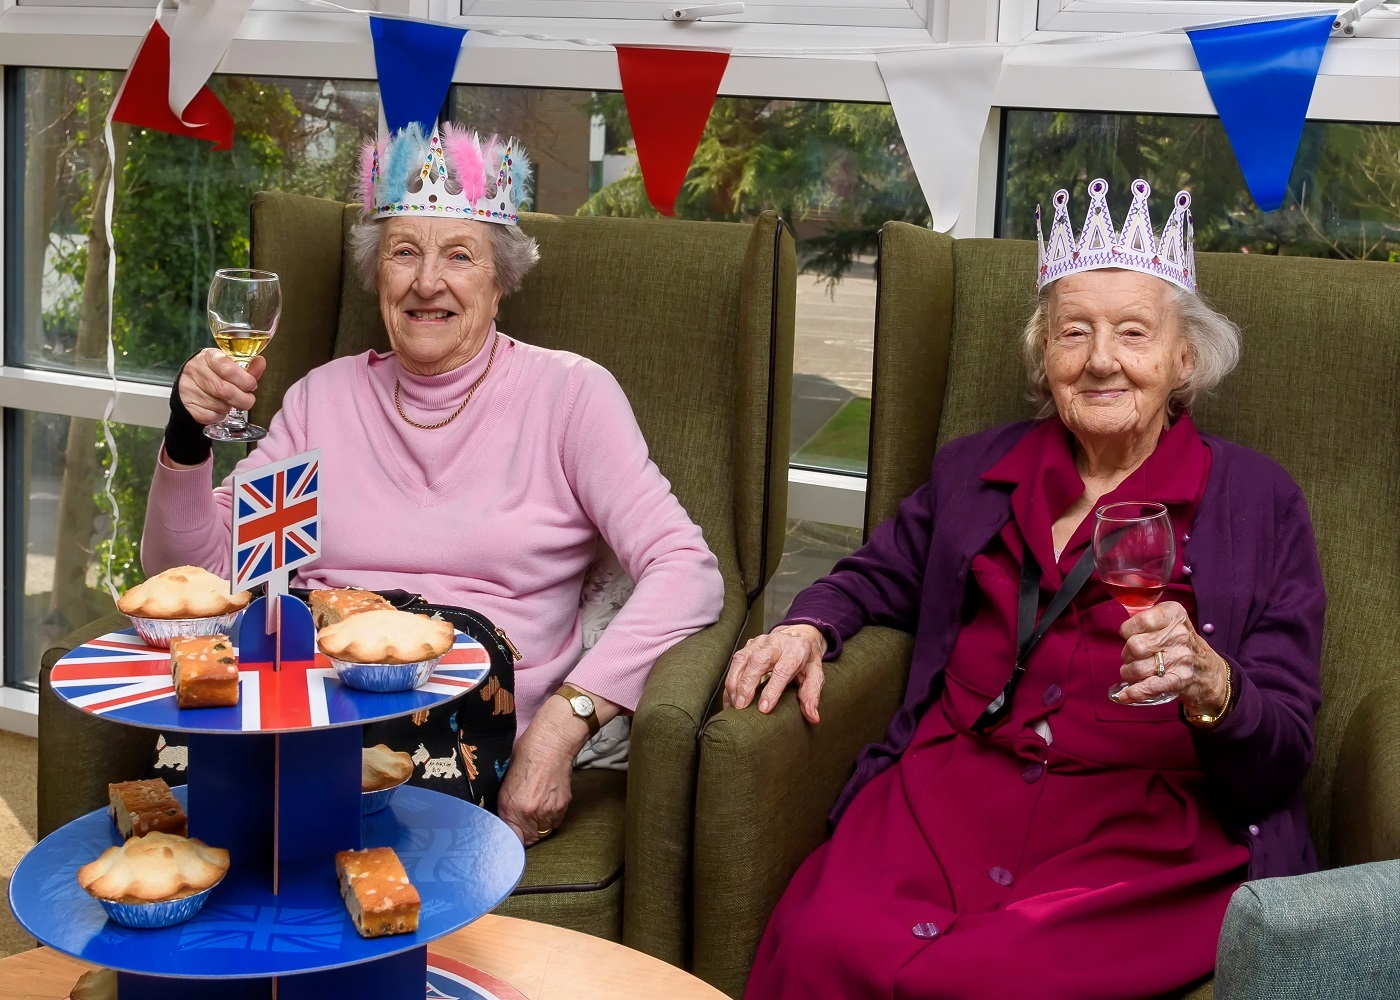 The Queen's 92nd birthday will be celebrated on April 20